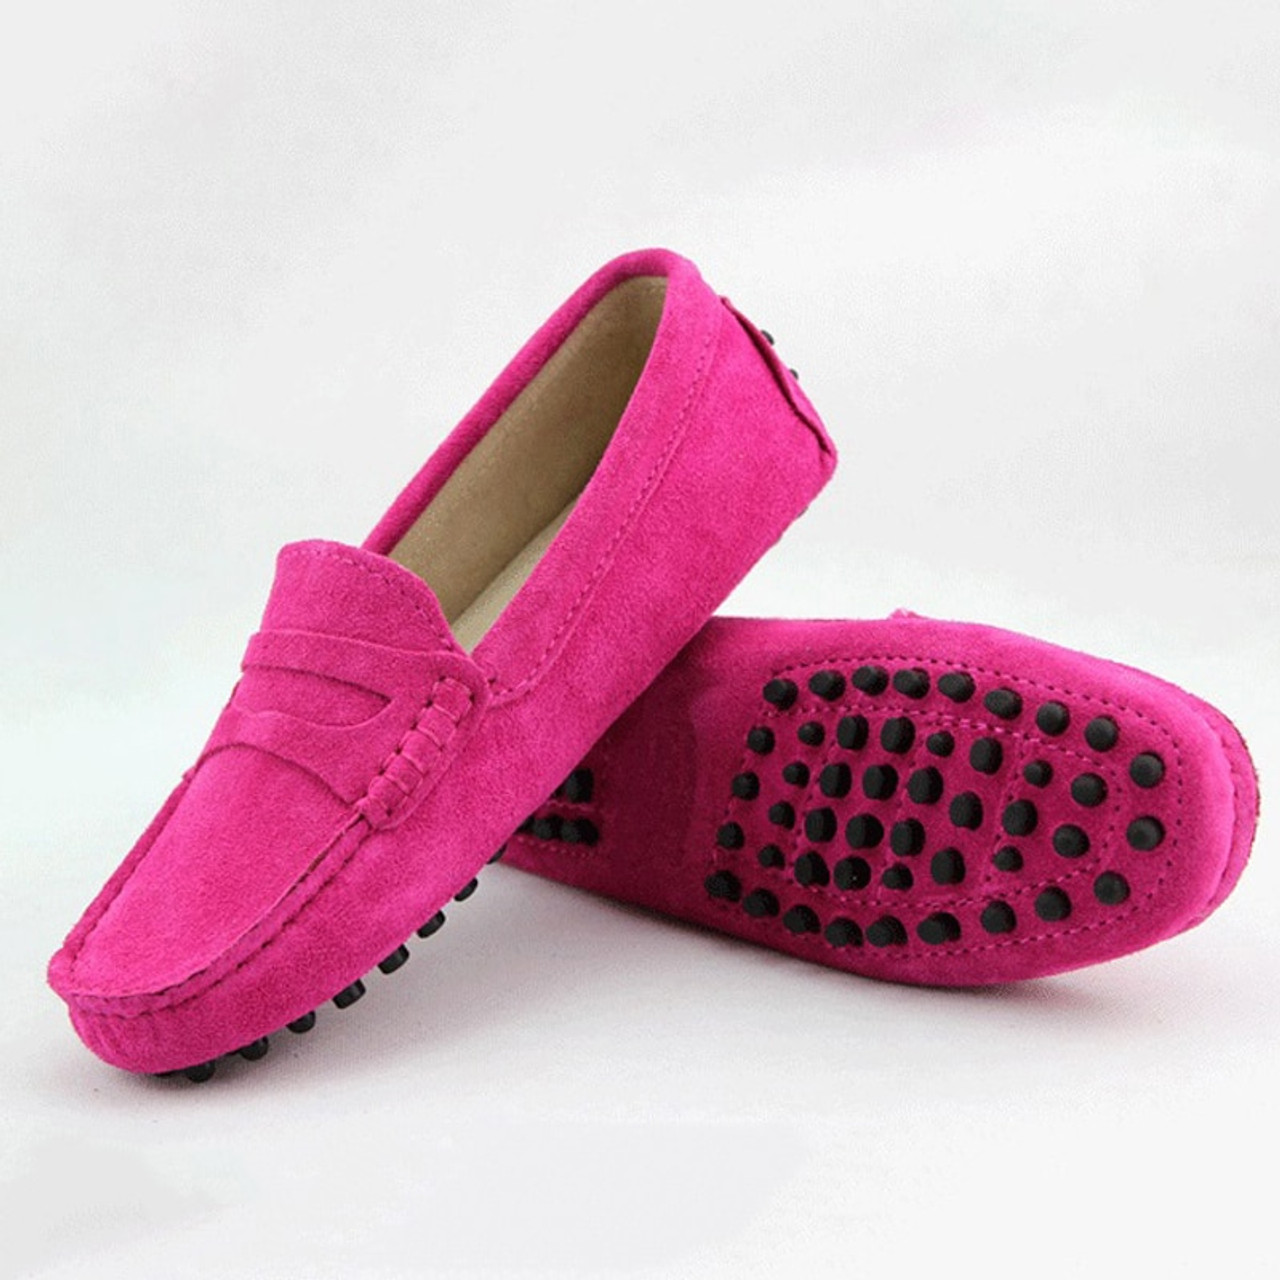 1082b868272 2018 New Genuine Leather Women Flat Shoes Casual Slip On Loafers Ladies  Flats Shoes Moccasins Lady ...